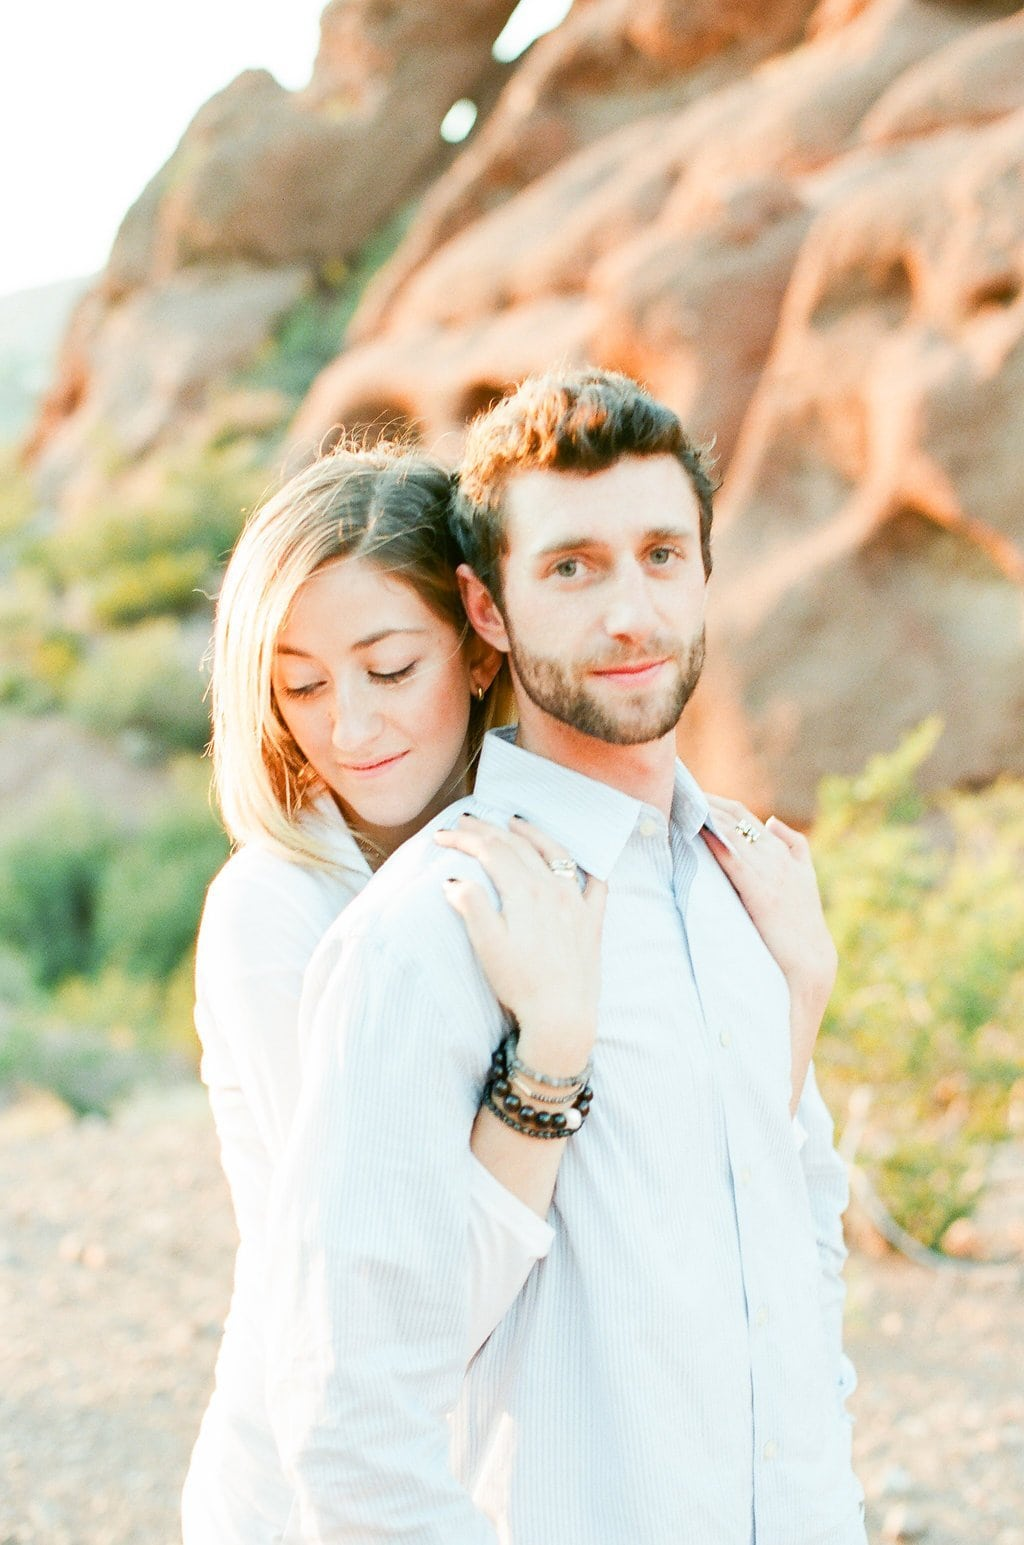 woman embracing man from behind grabbing his shoulders during engagement photos